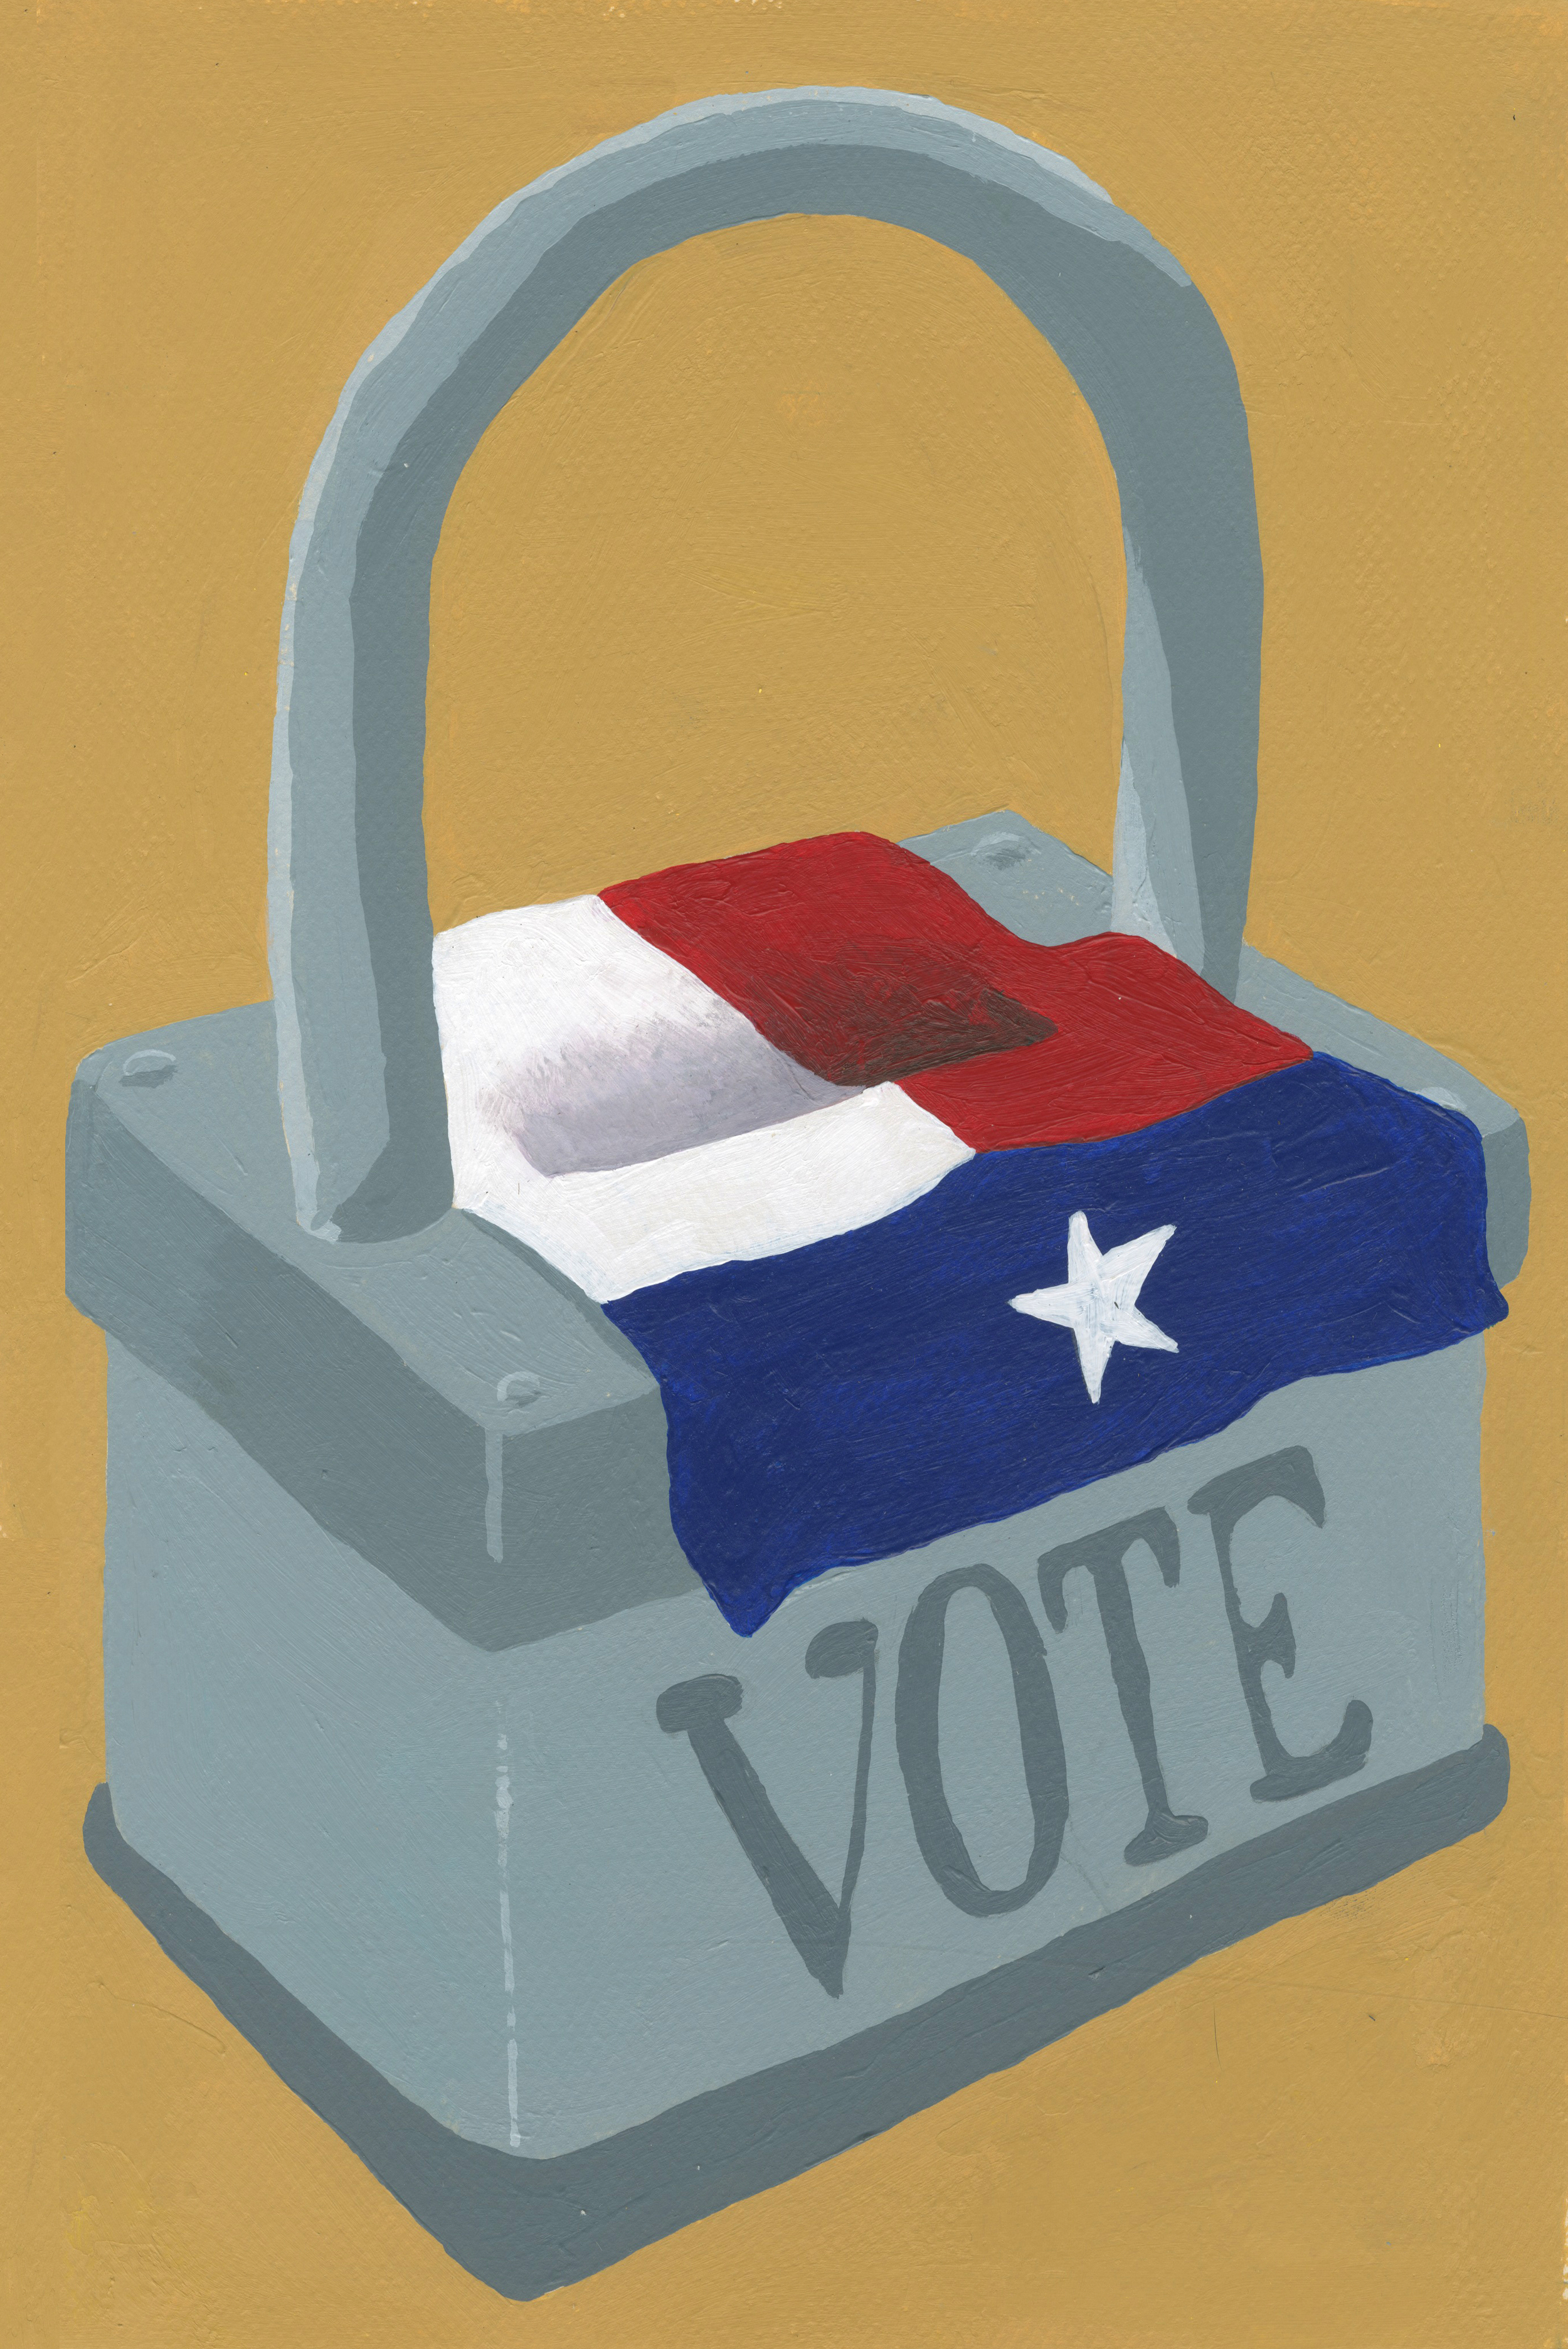 Restricts on Voting Laws in Texas  acrylic on illustration board